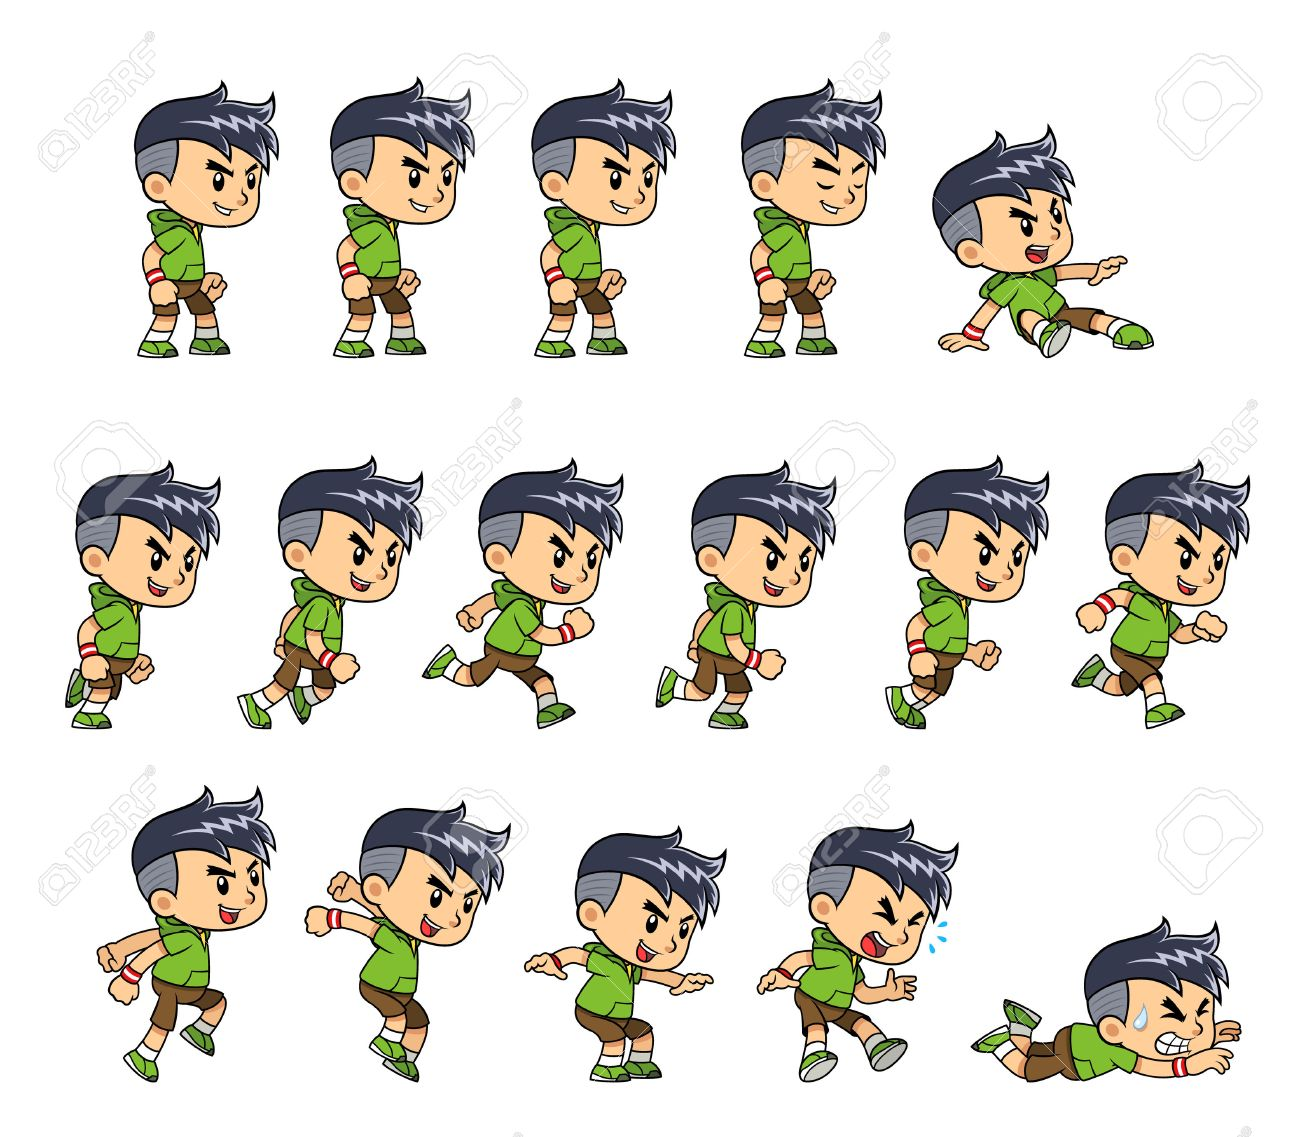 Sporty Boy game sprites for side scrolling action adventure endless